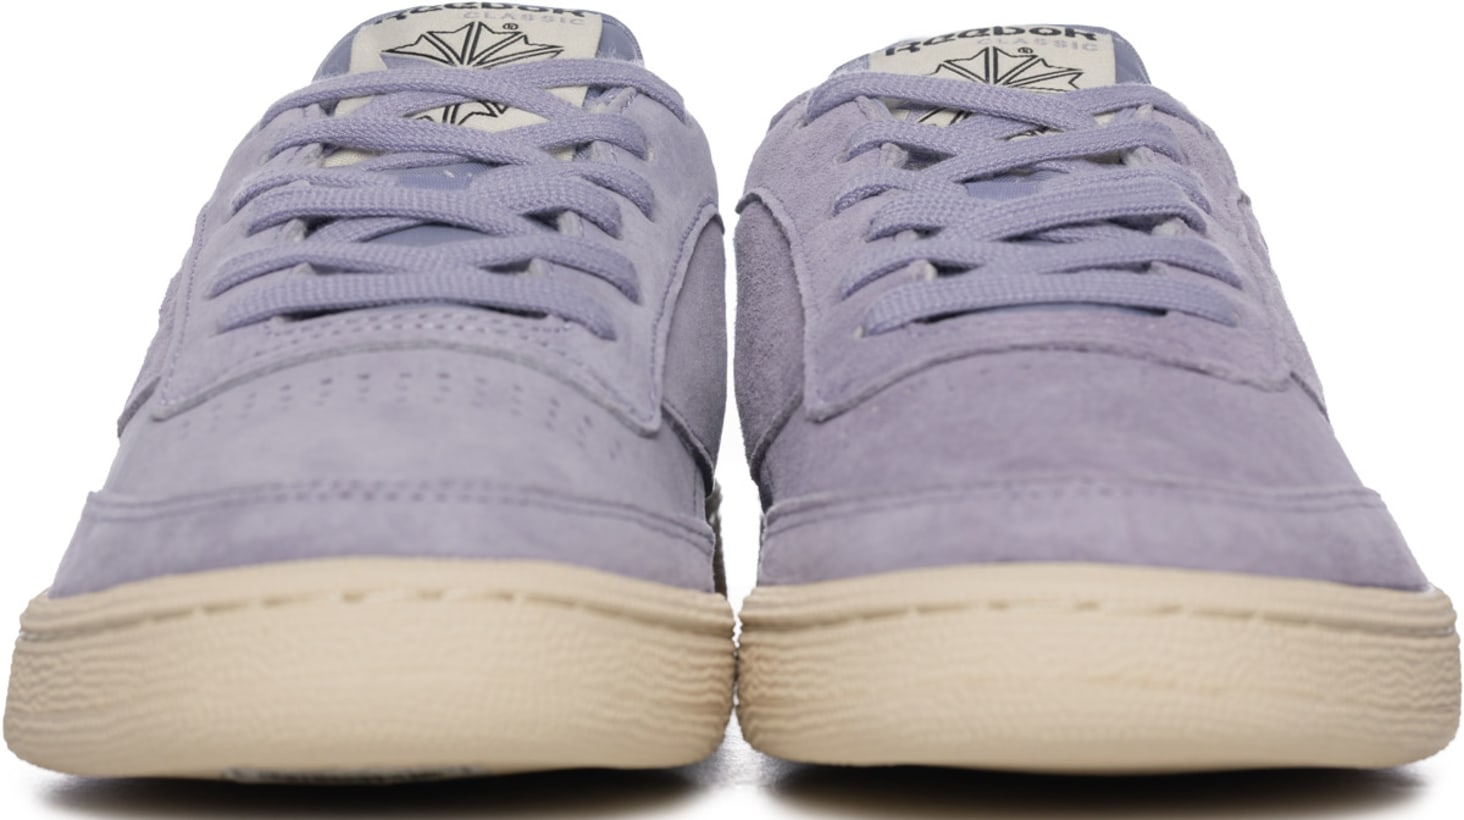 e378b13f956 Reebok  Club C 85 Pastels - Moon Violet Off White